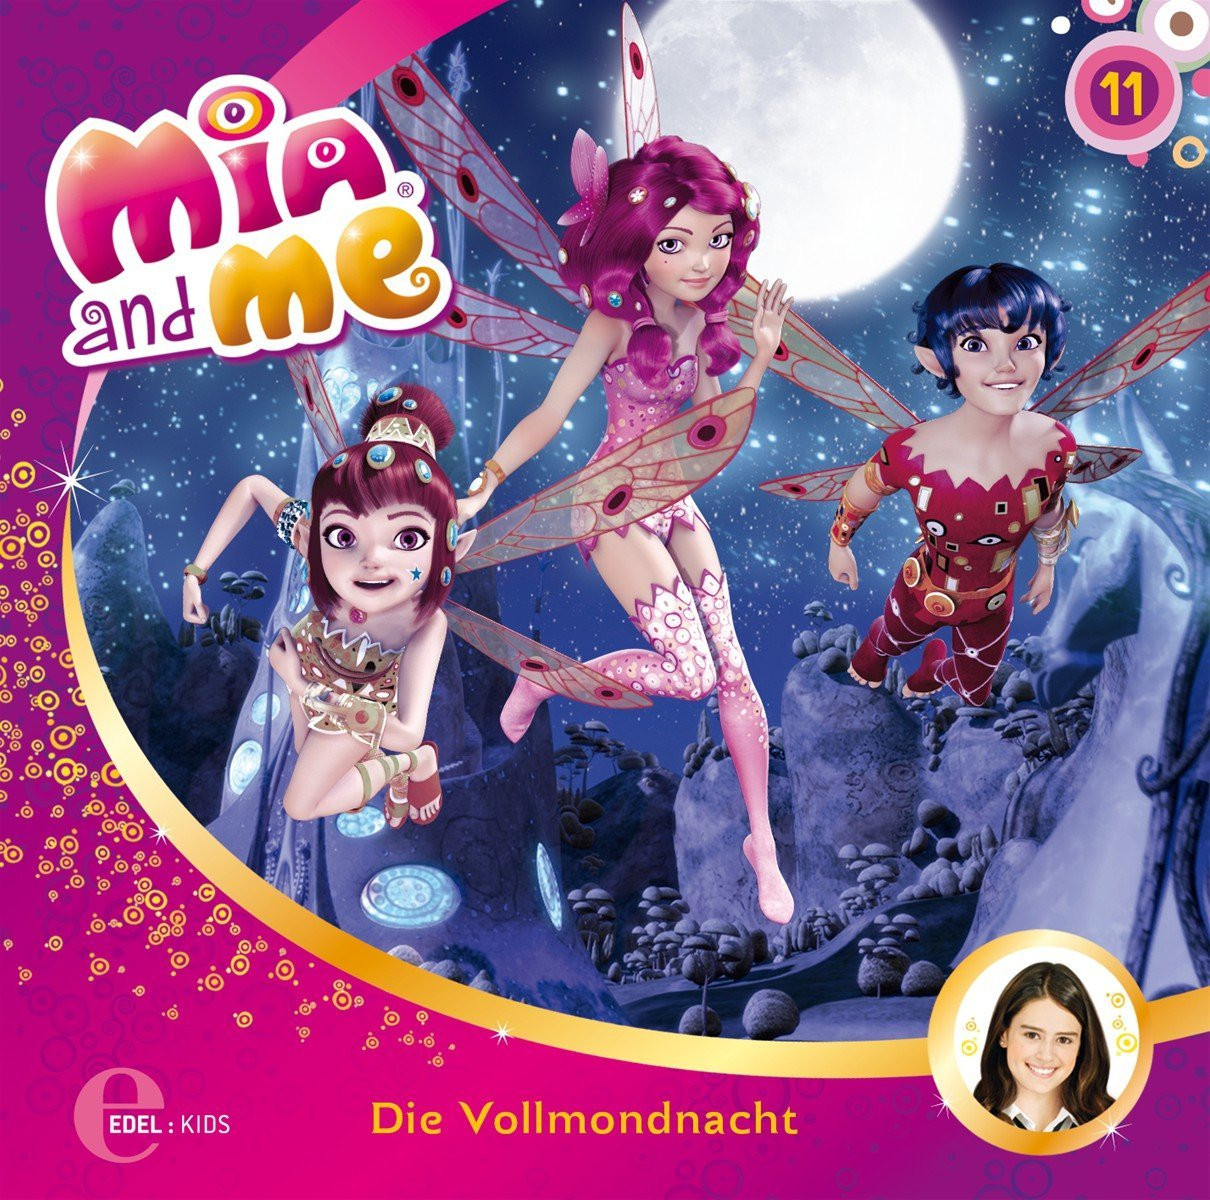 Mia and me - Folge 11: Die Vollmondnacht